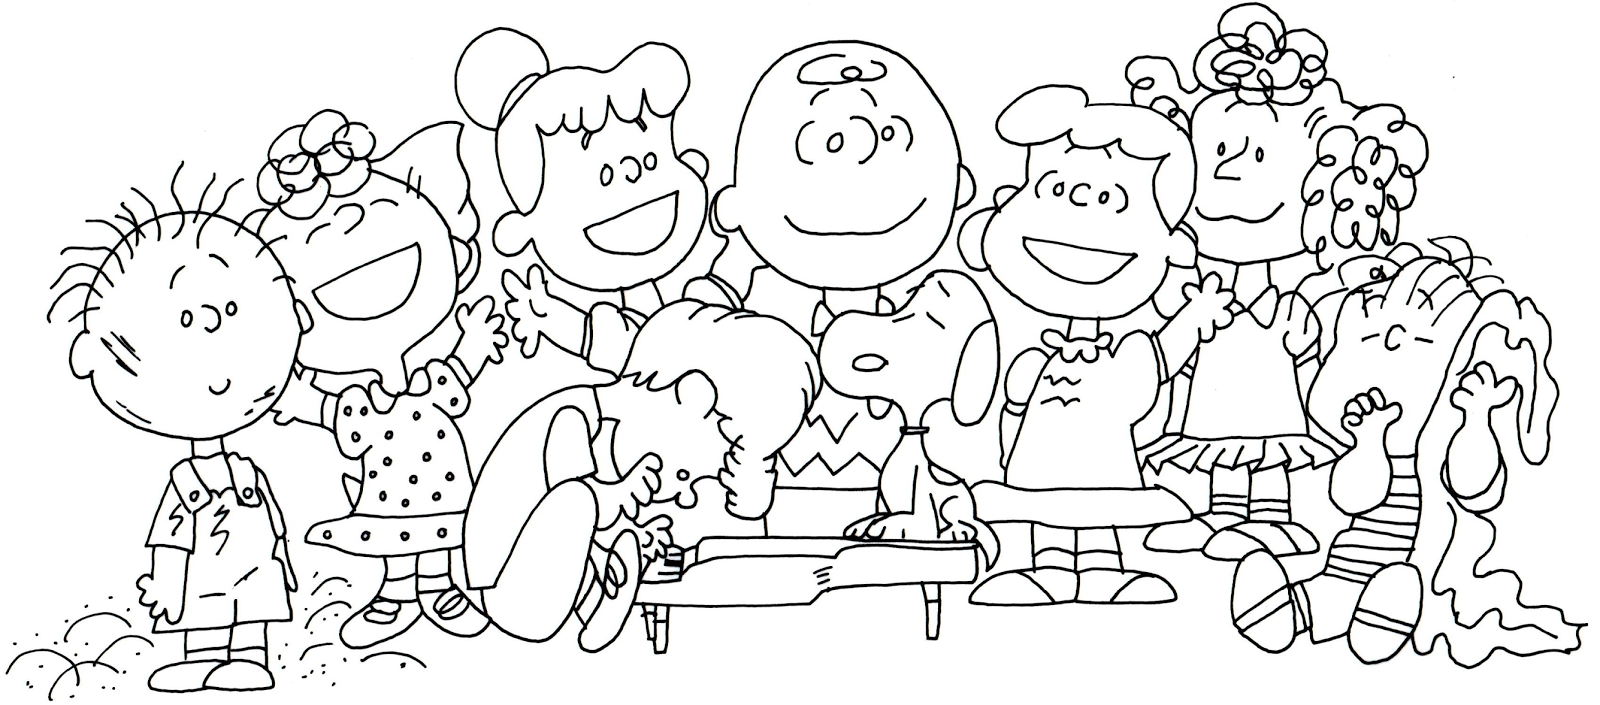 Free Printable Coloring Page For The Whole Gang Of Peanuts Pigpen Sally Schroeder Snoopy Violet Gray Charlie Brown Lucy And Linus